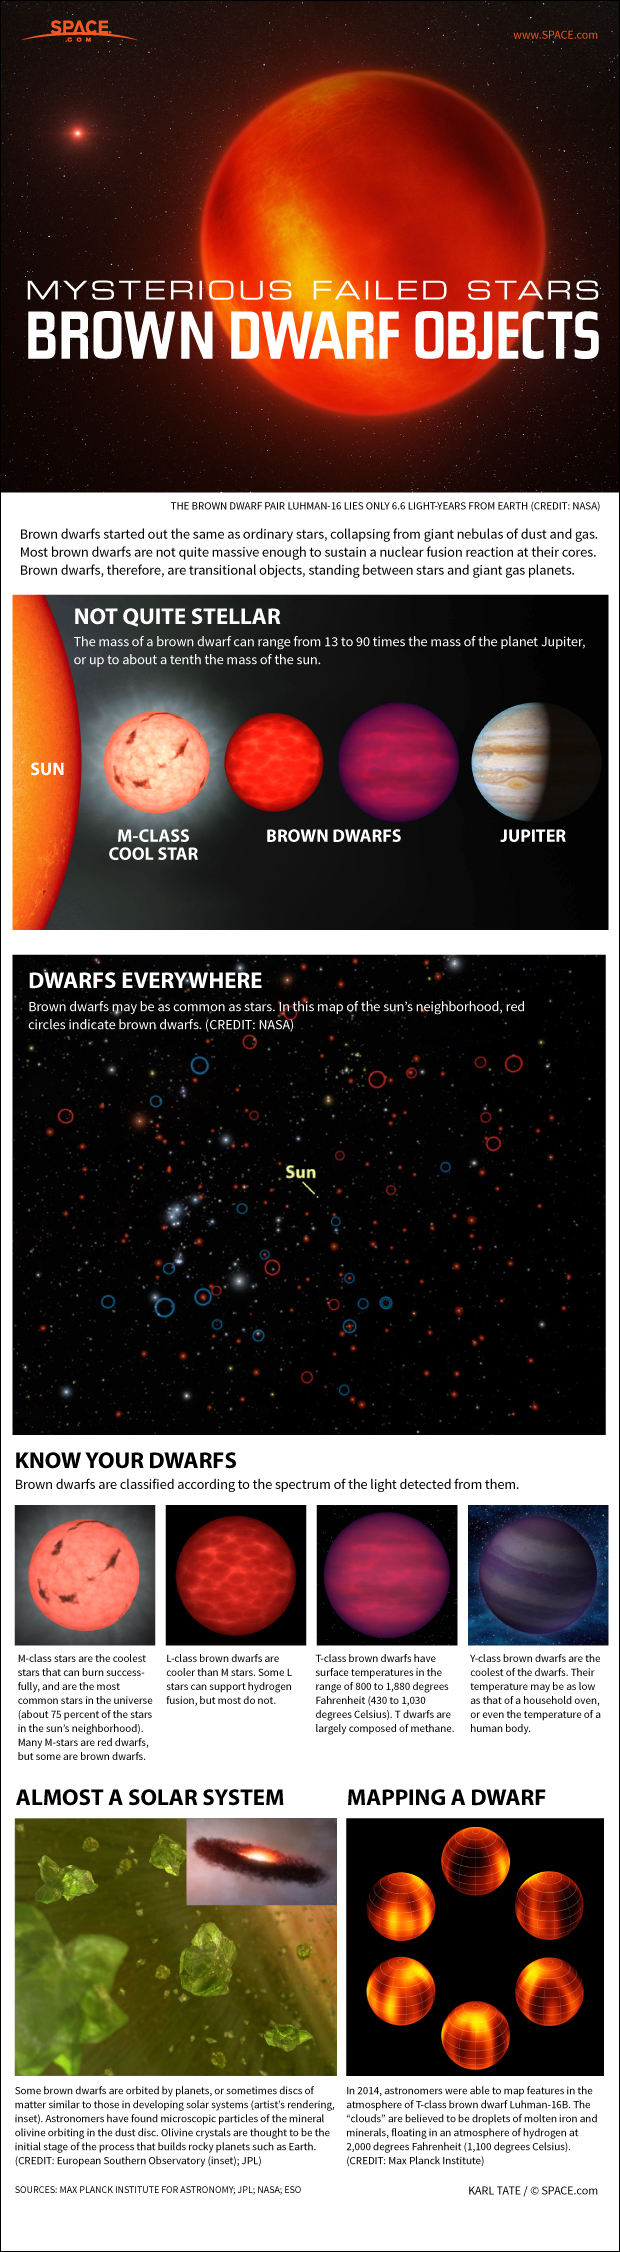 Brown Dwarfs, Strange Failed Stars, Explained (Infographic)